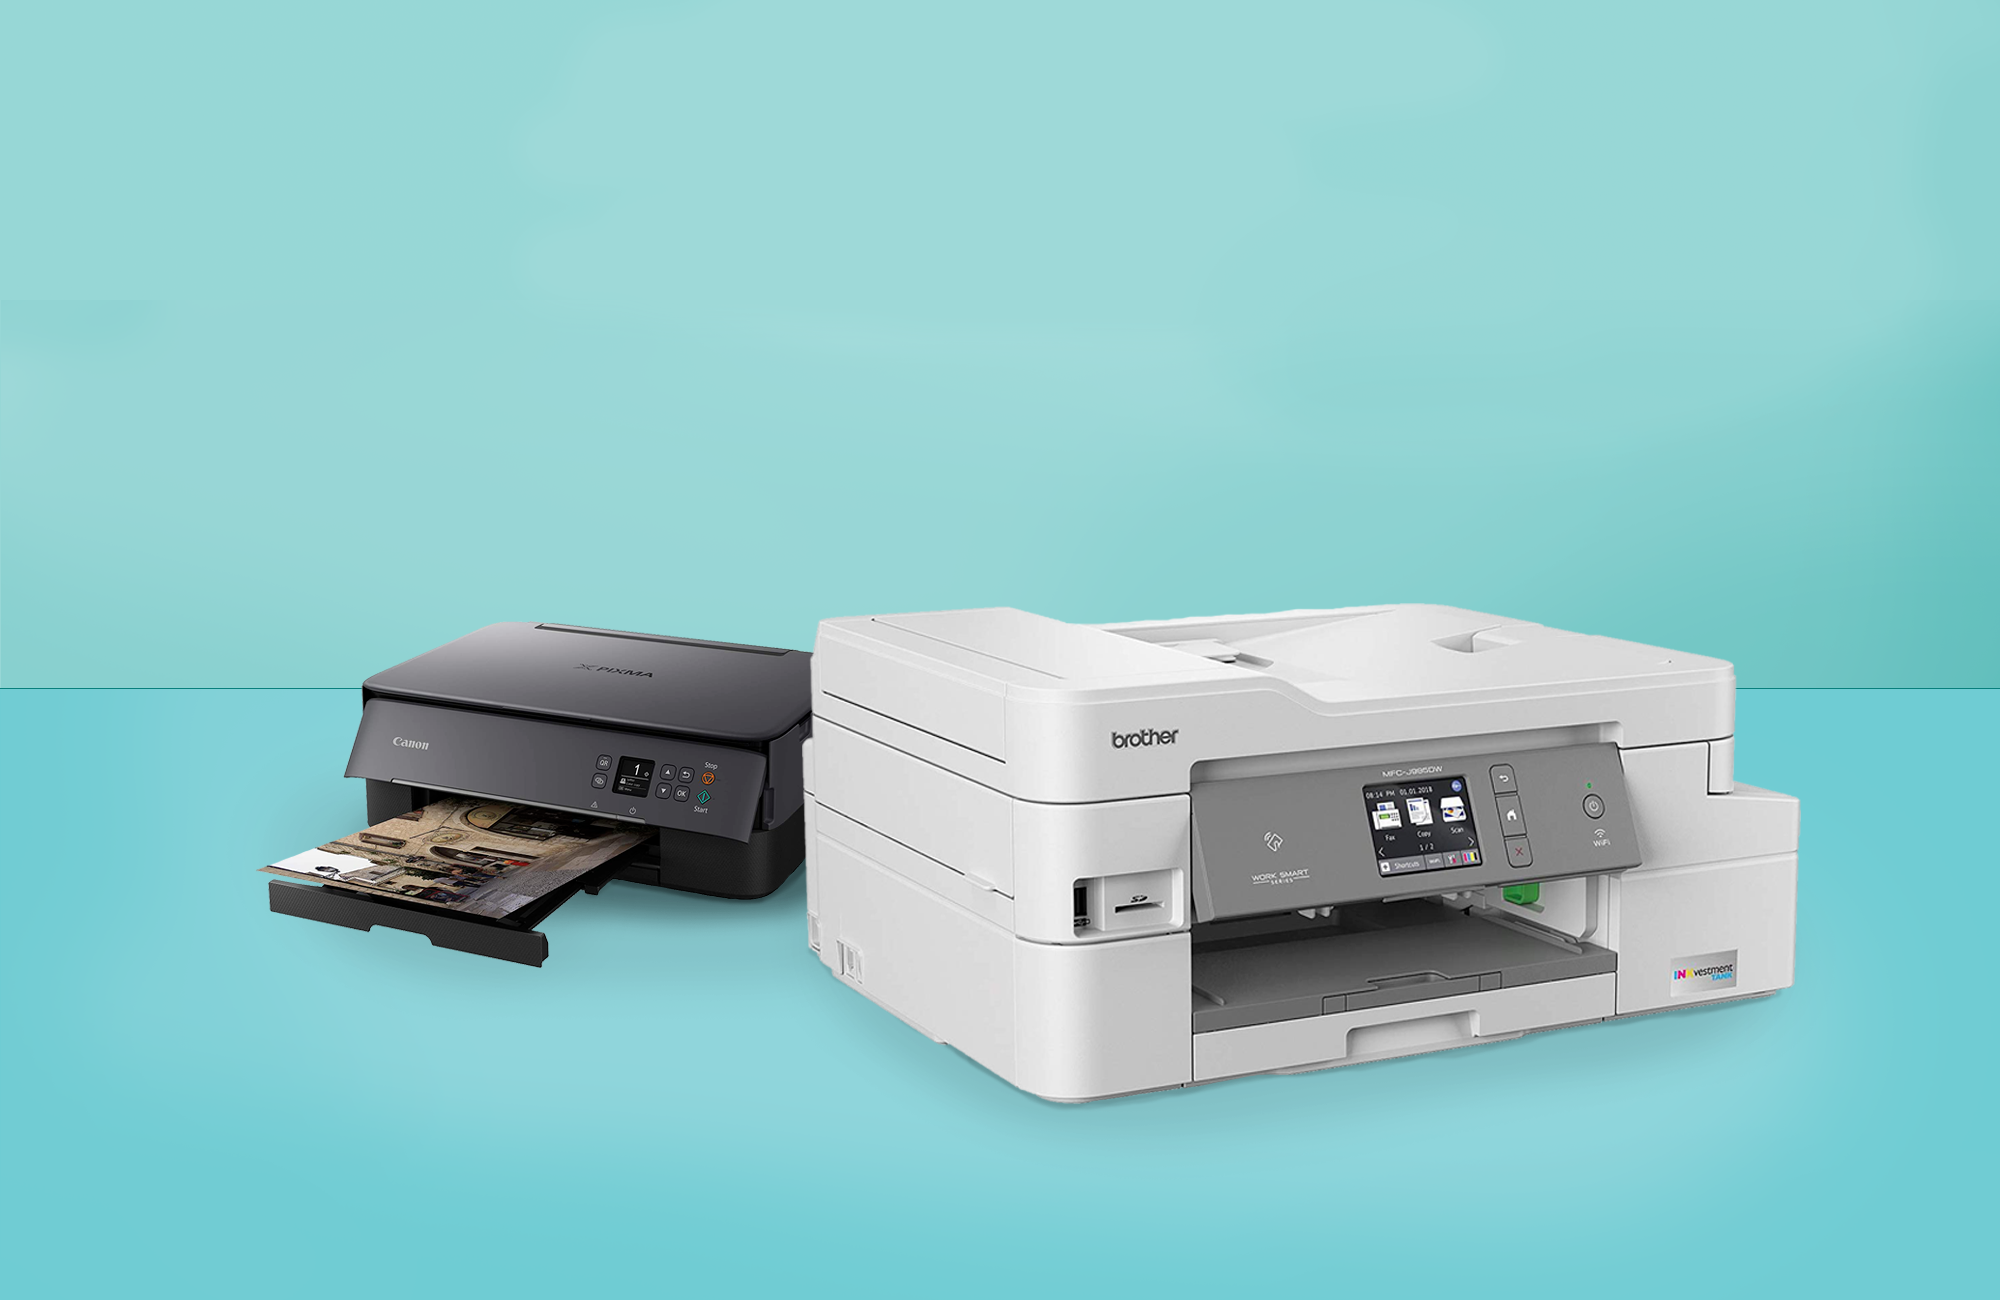 8 Best Printers Of 2021 Top Rated Printer For Home Use